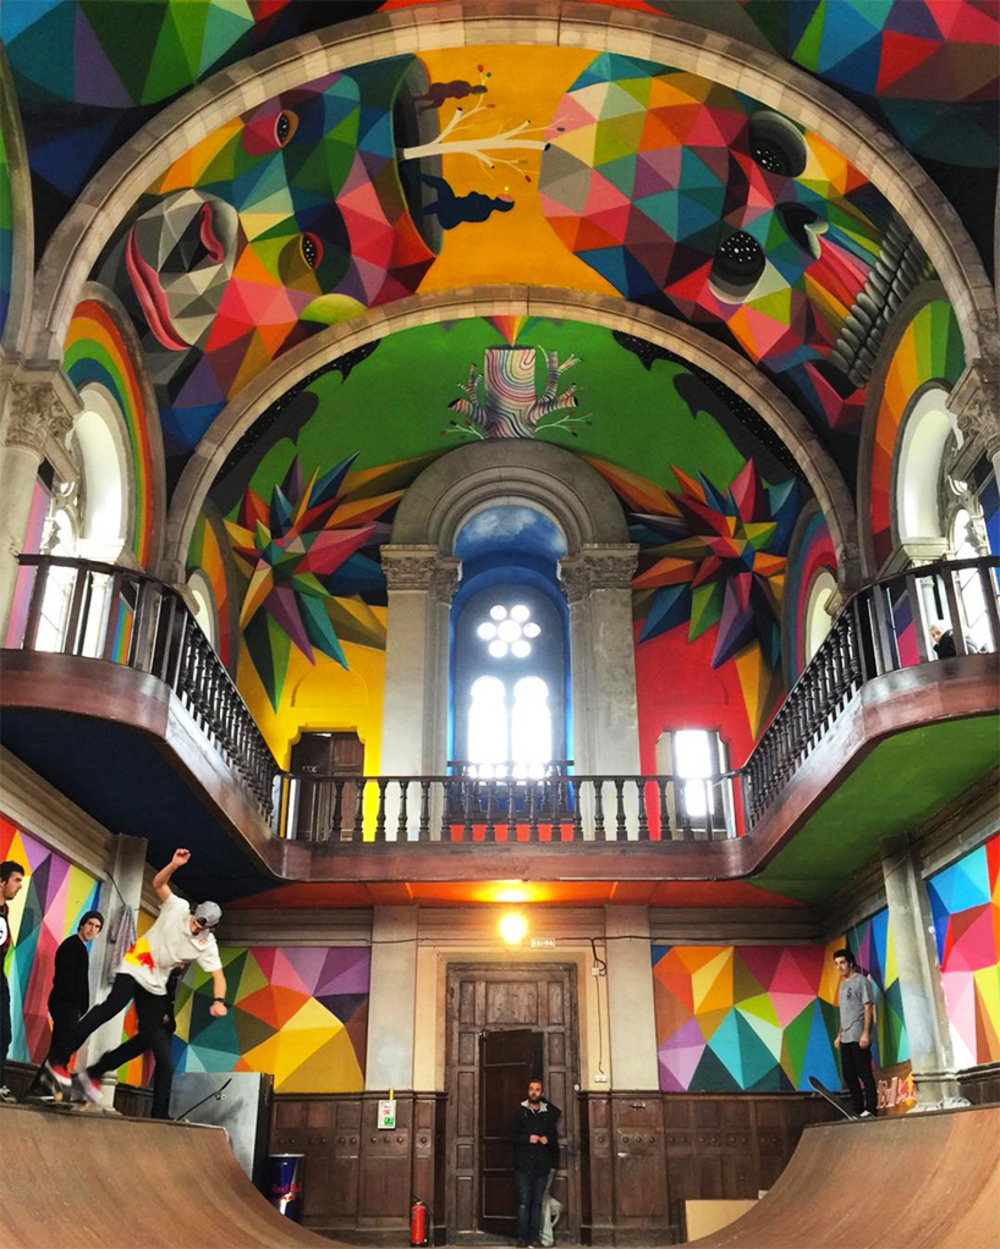 kaos_temple_skate_park_church_okuda_san_miguel_07